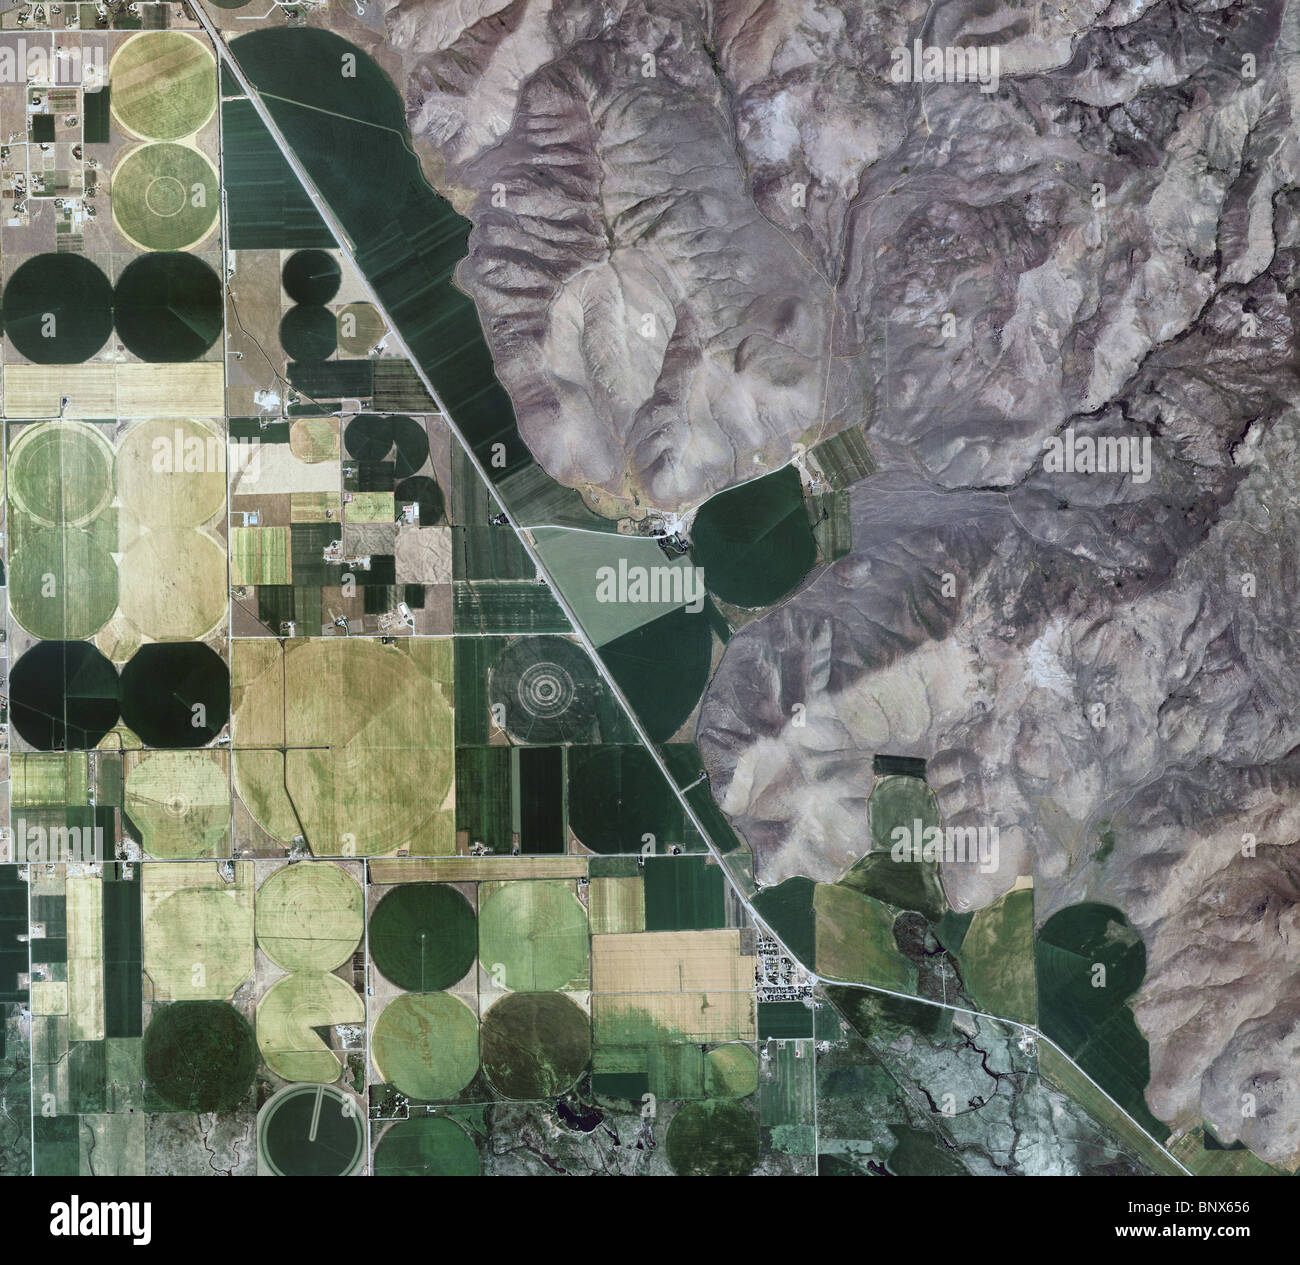 aerial map view above farming river valley Blaine county Idaho Stock